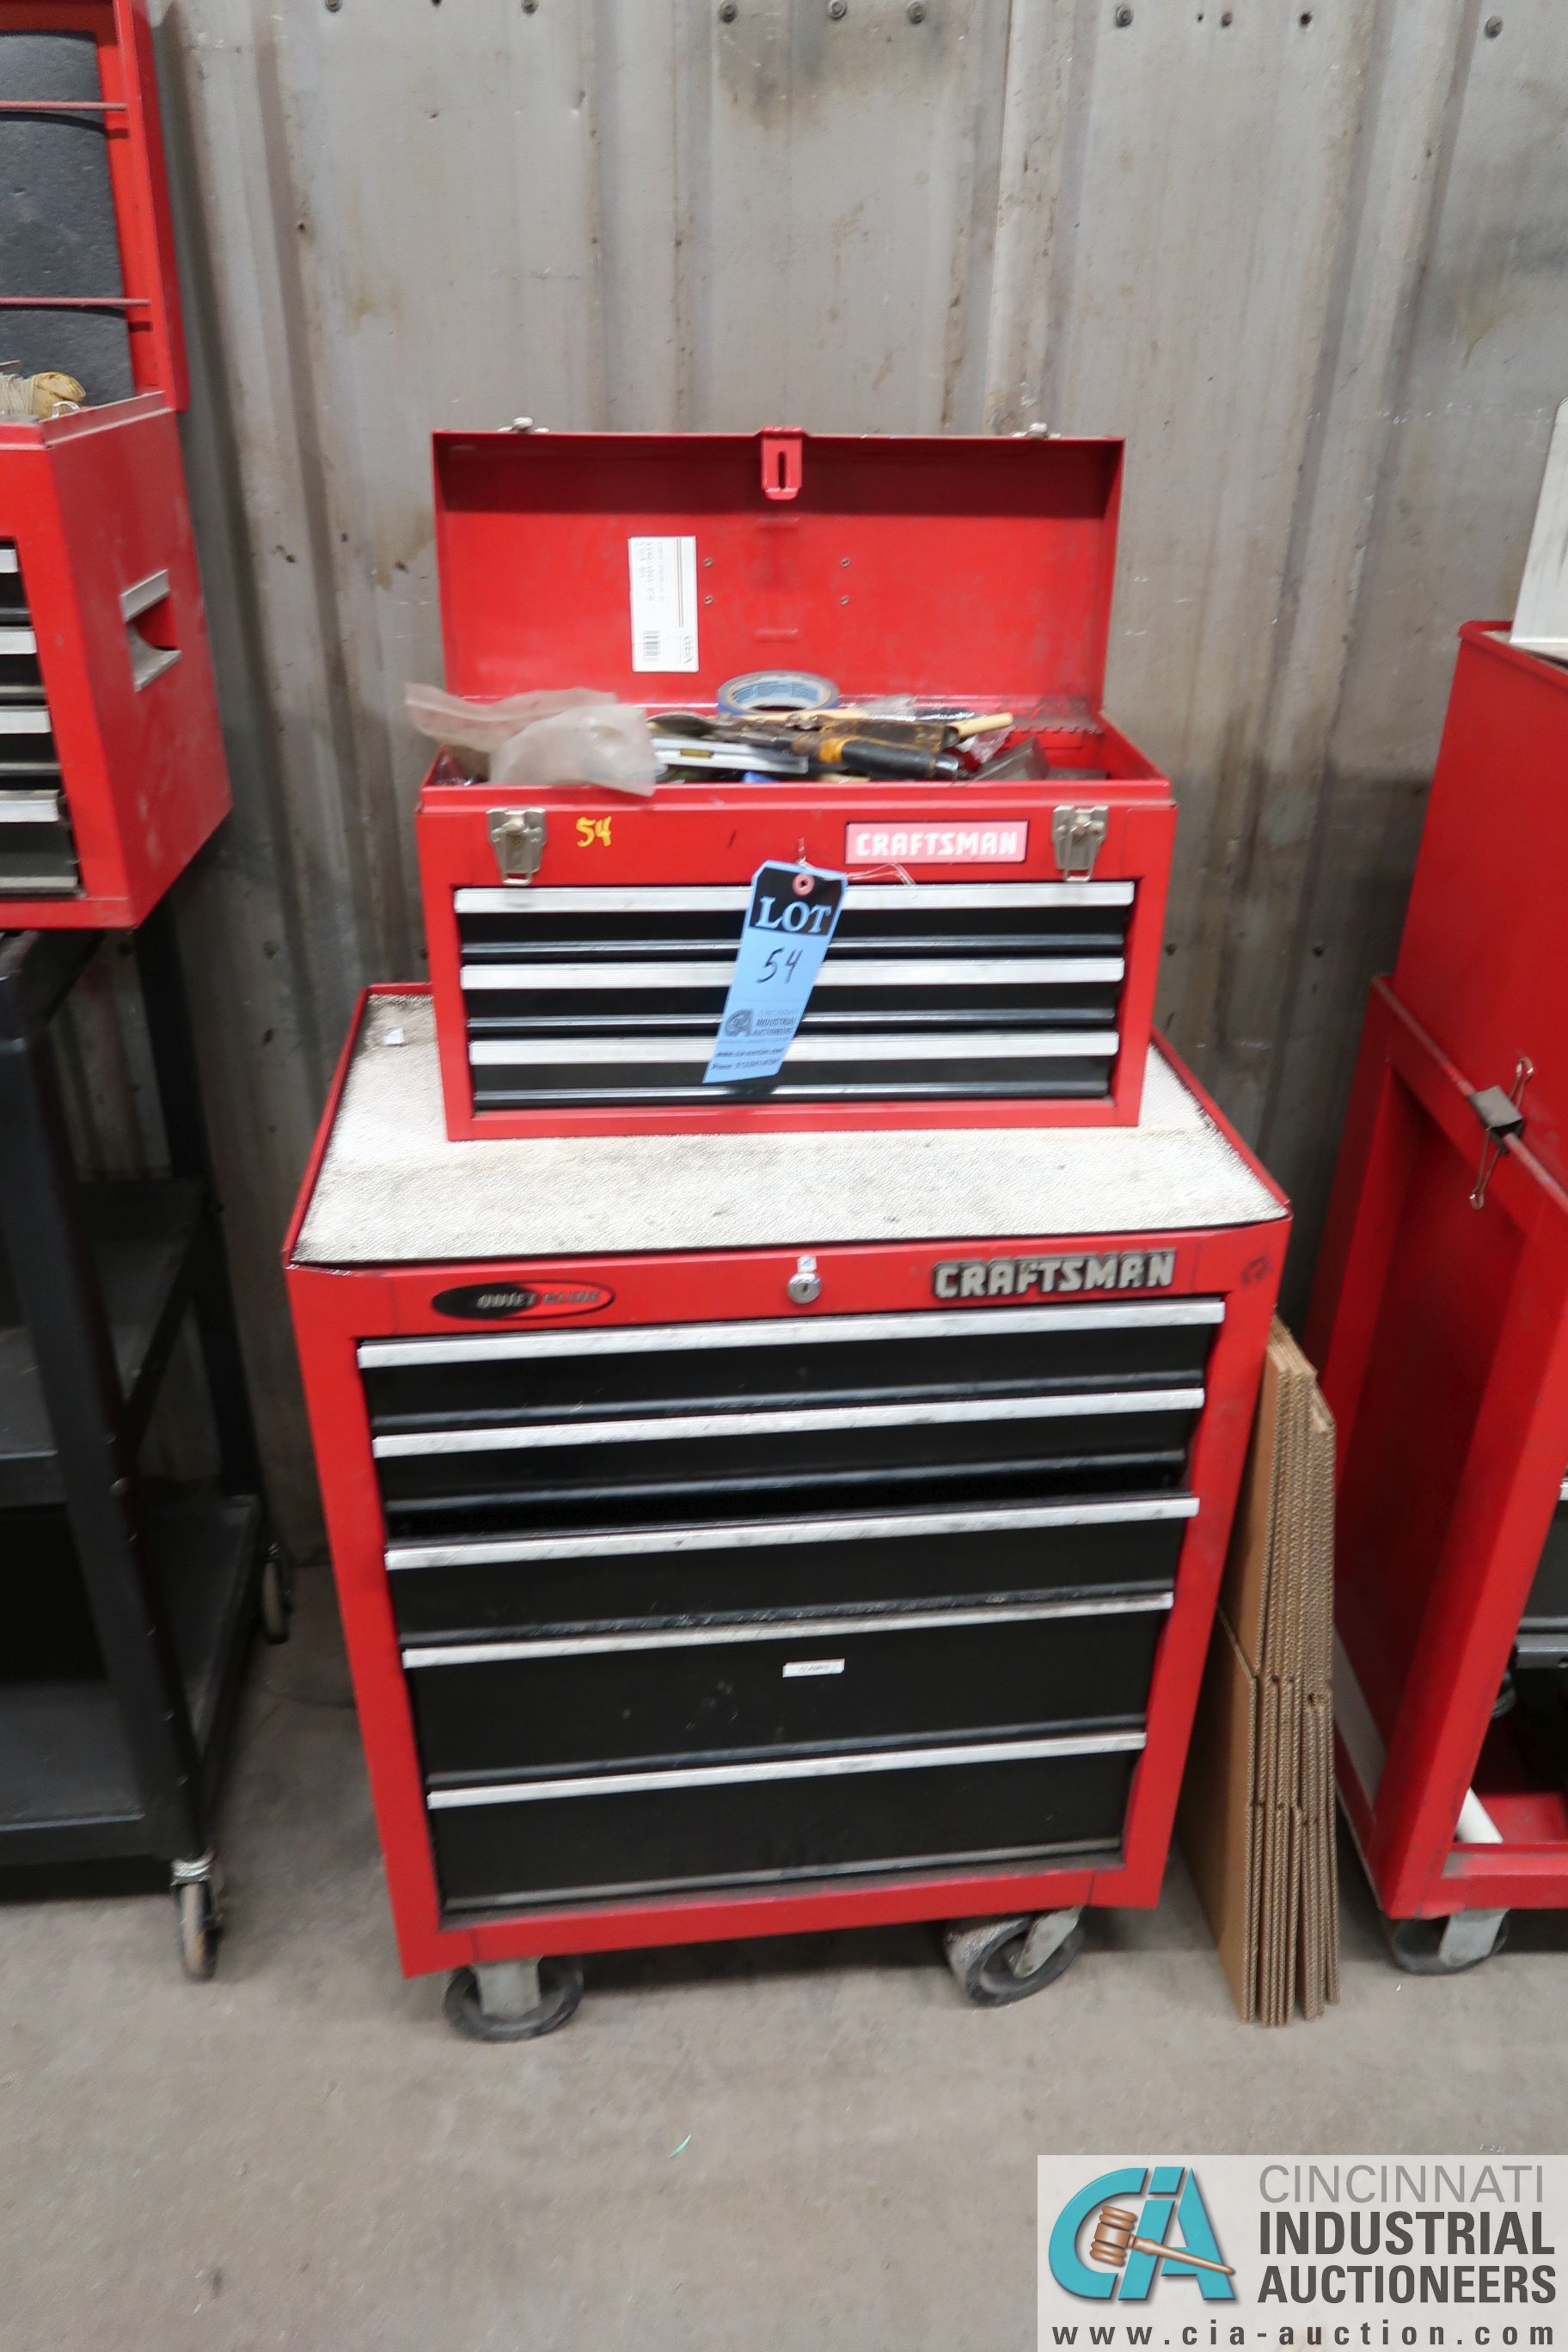 8-DRAWER CRAFTSMAN PORTABLE TOOL BOX WITH TOOLS